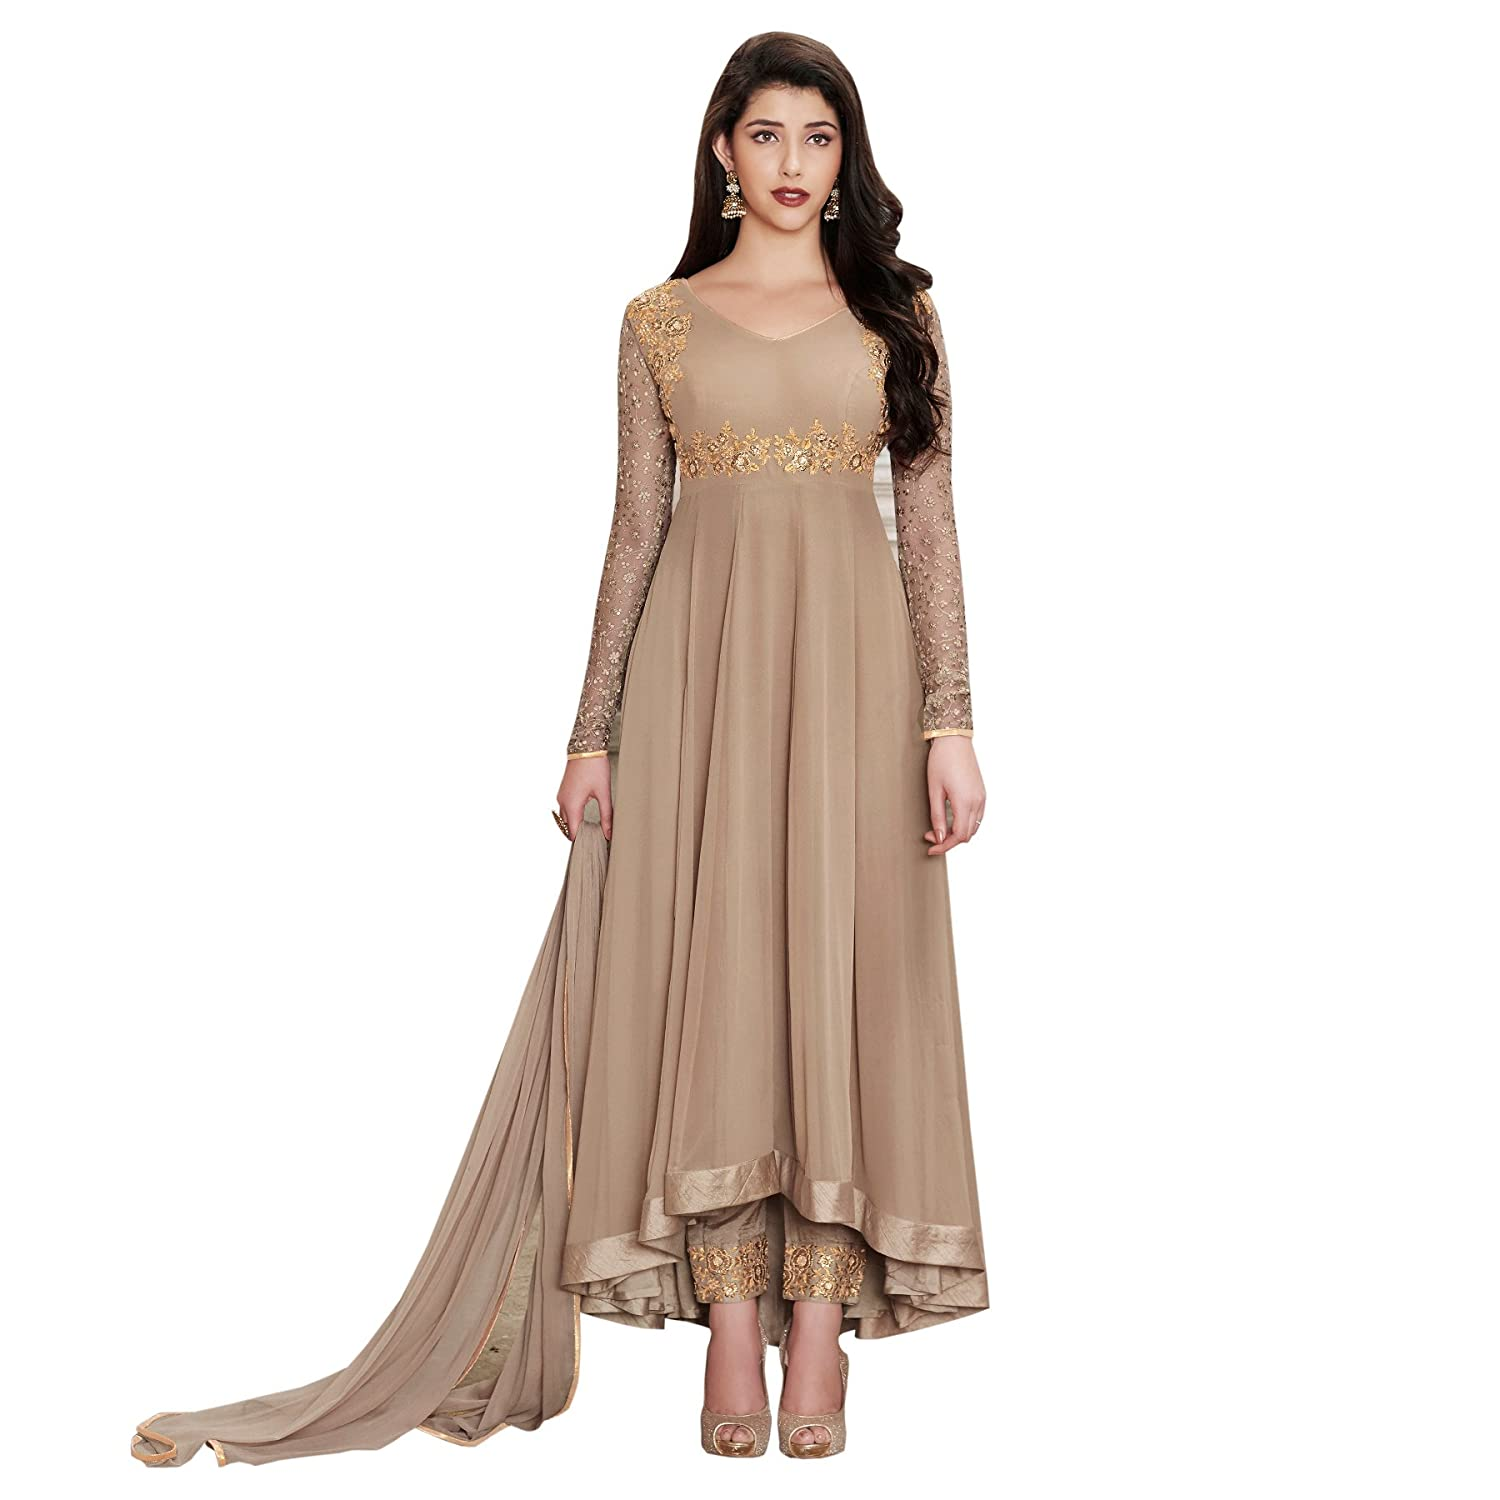 e64327e35a2 Glamify Women s Georgette Semi-Stitched Anarkali Suit (Grey Free Size)   Amazon.in  Clothing   Accessories